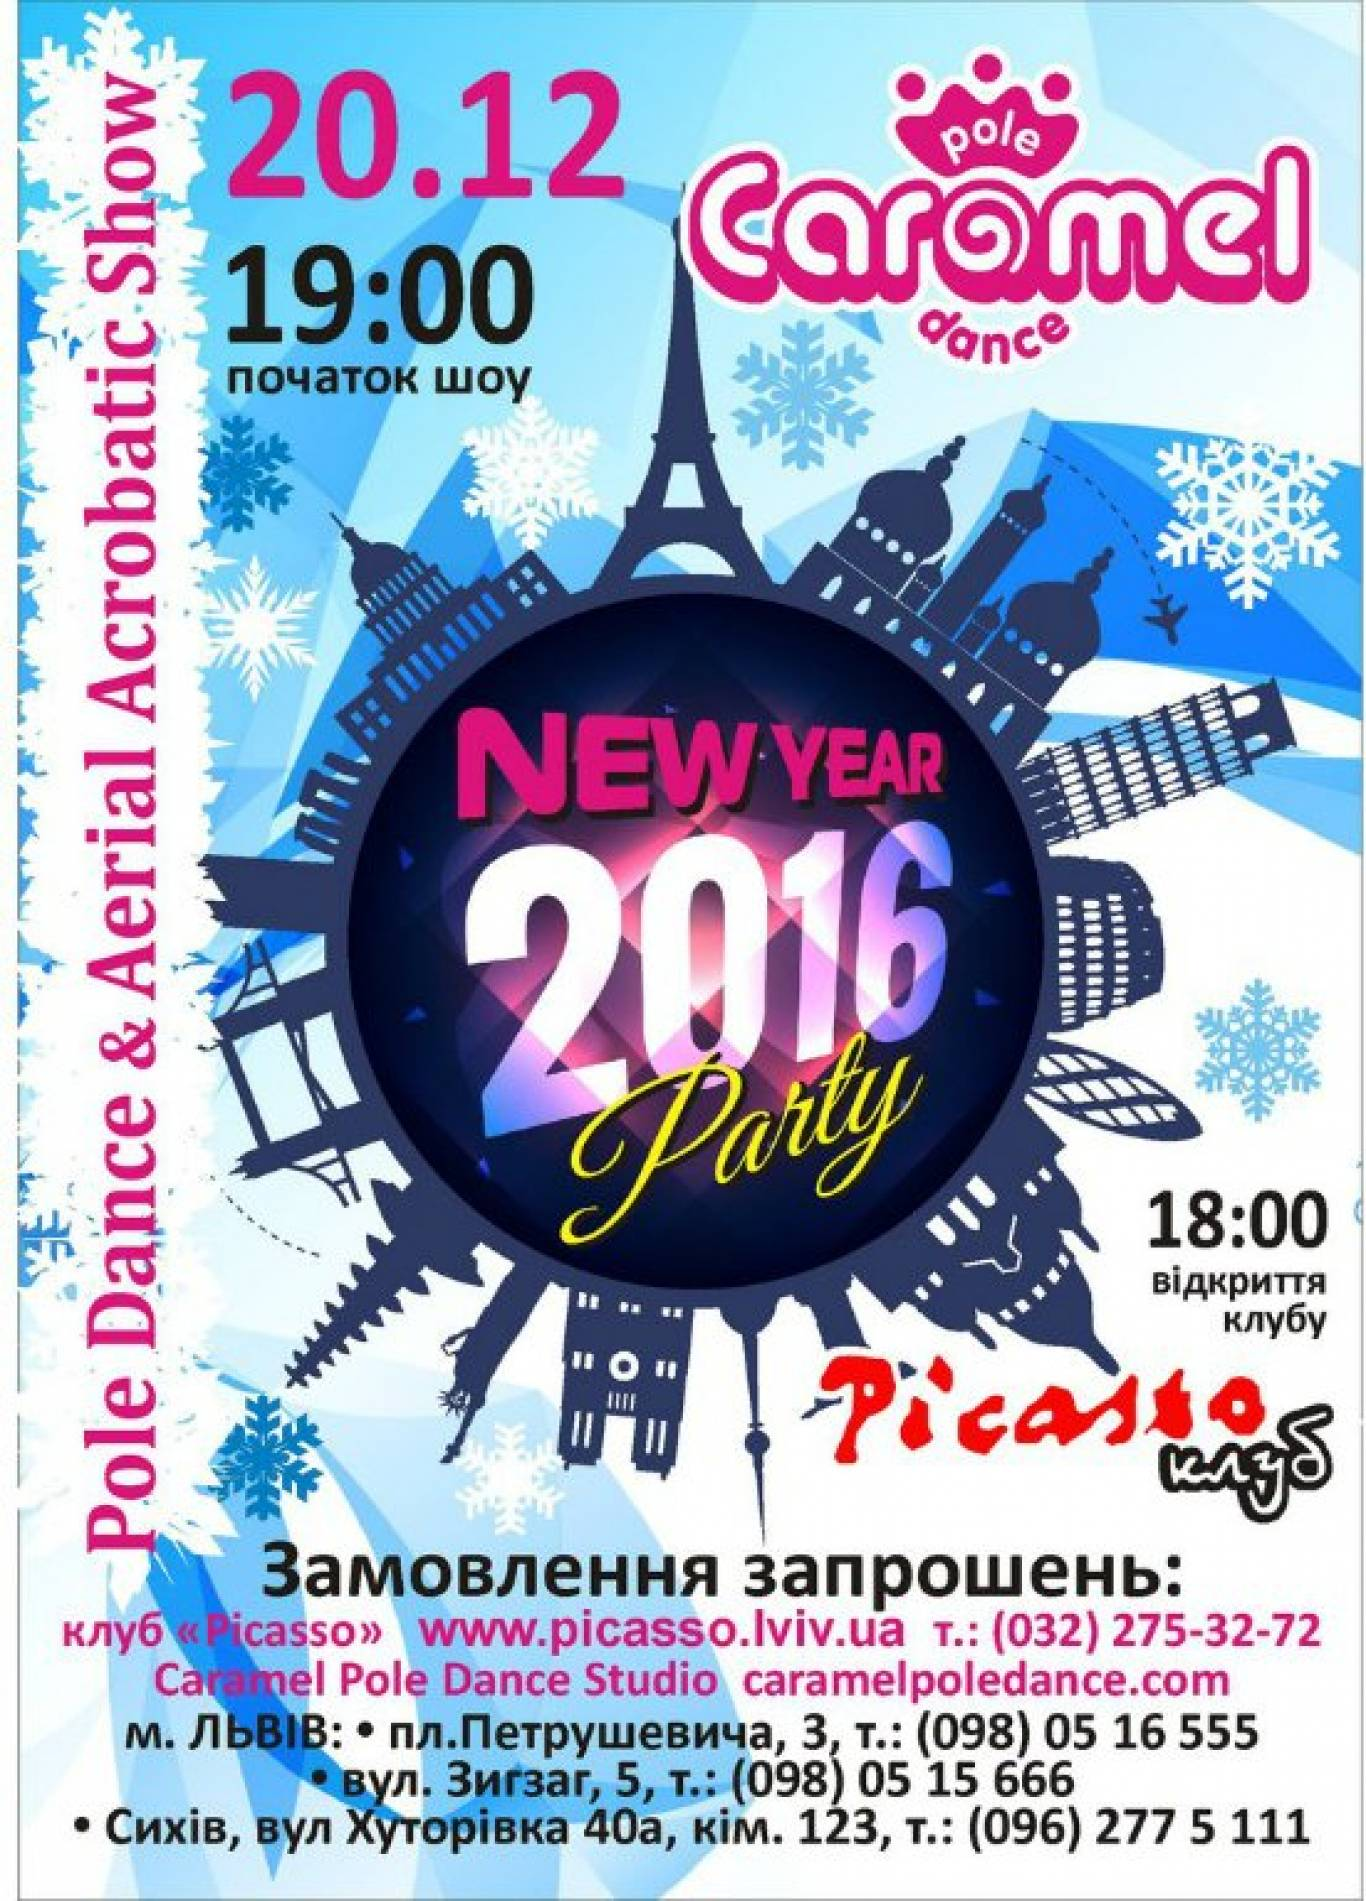 Вечірка New Year 2016 Party